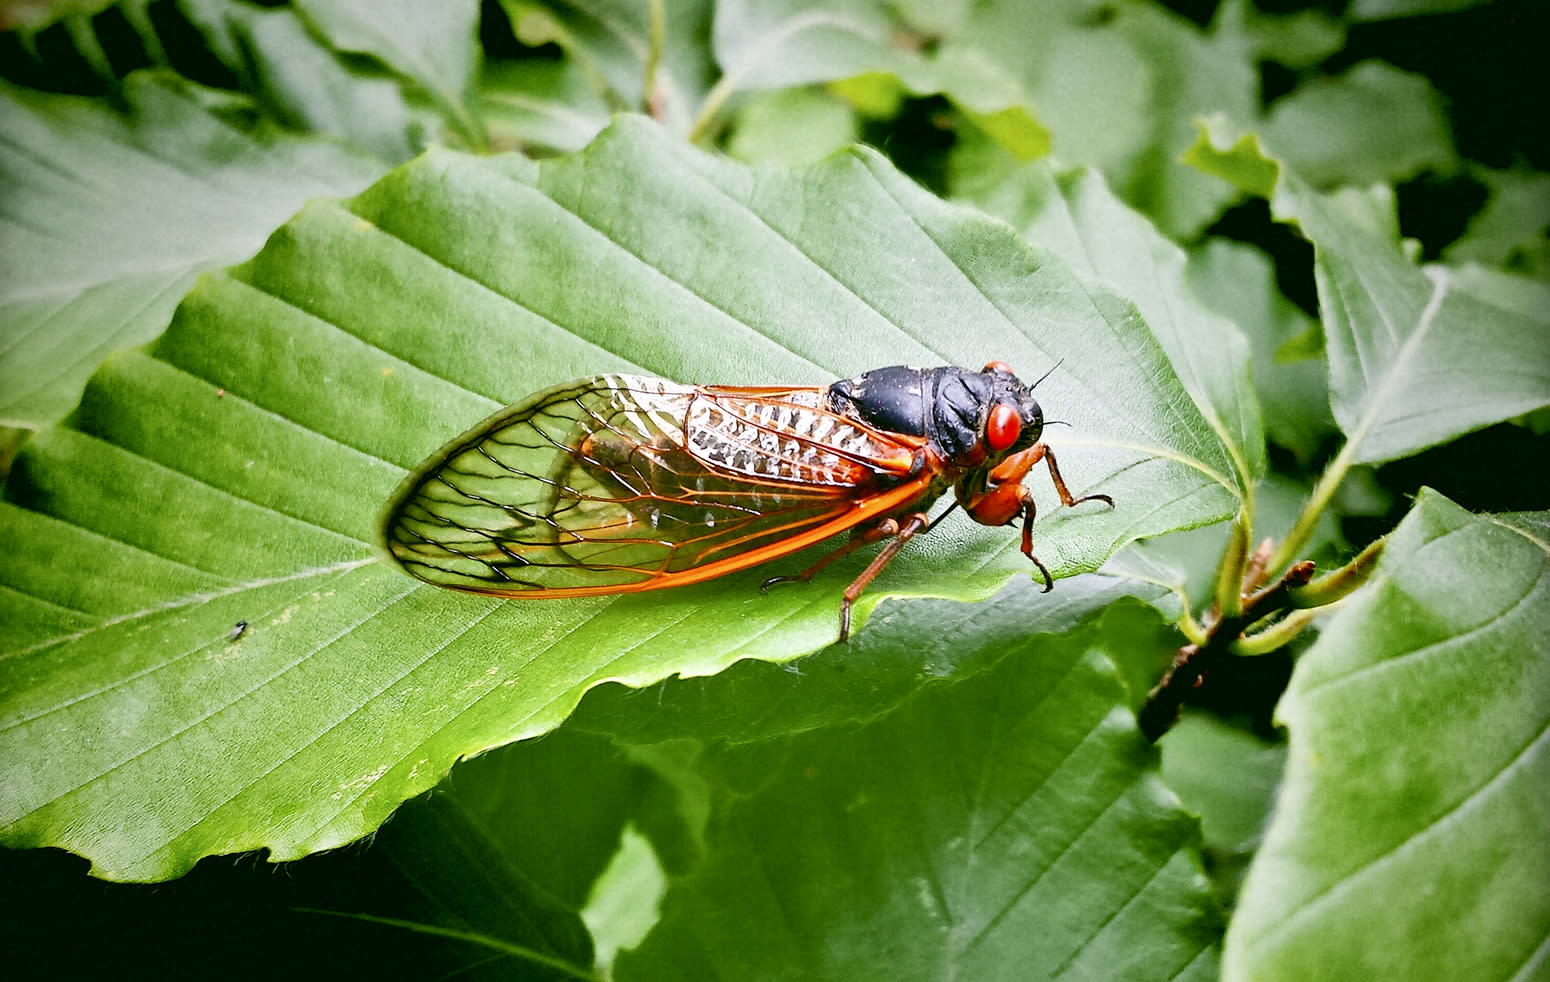 Millions of 17-year cicadas will emerge in the South, creating 'substantial noise issue'